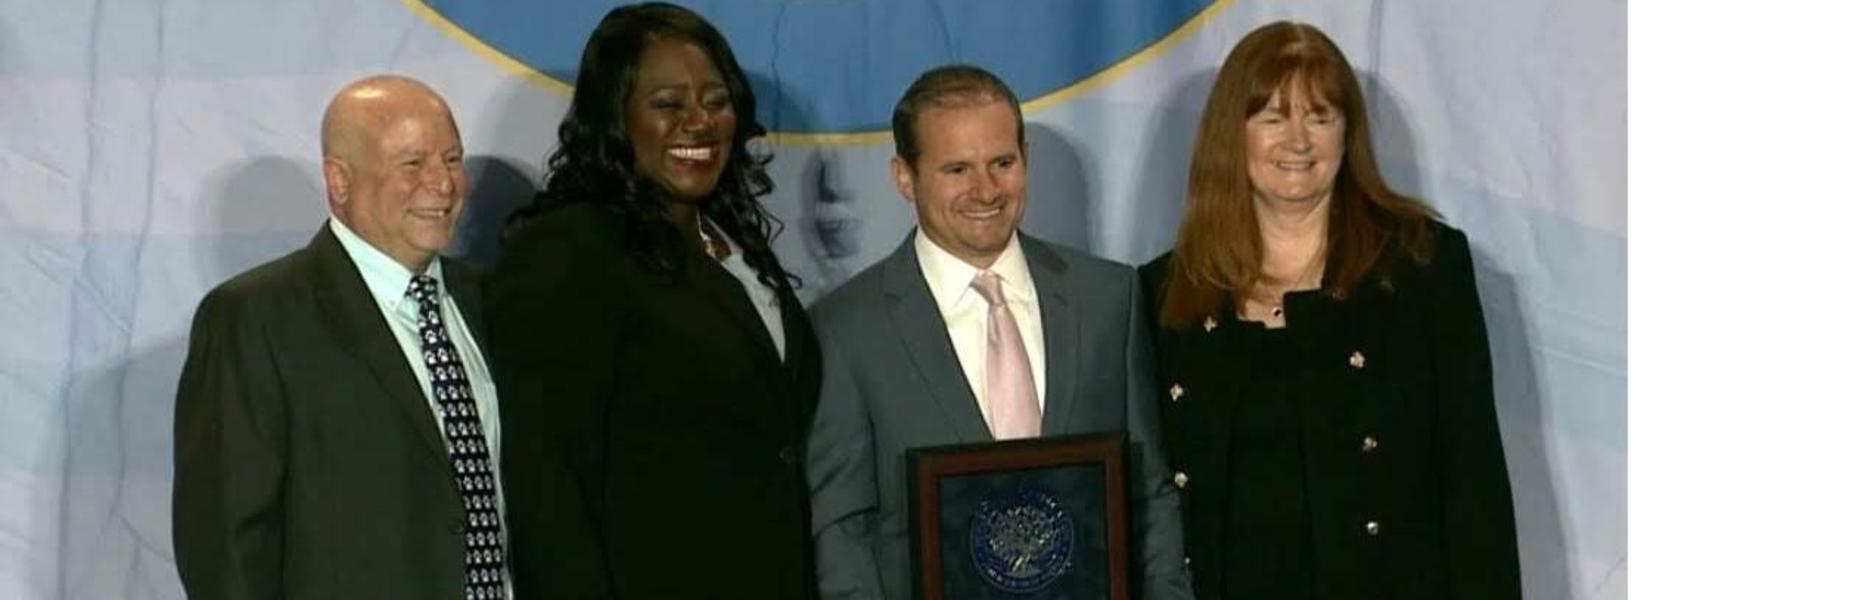 Photo of Dr Dolan, Dr Perry & Washington School teacher posing with National Blue Ribbon Schools program director during ceremony.